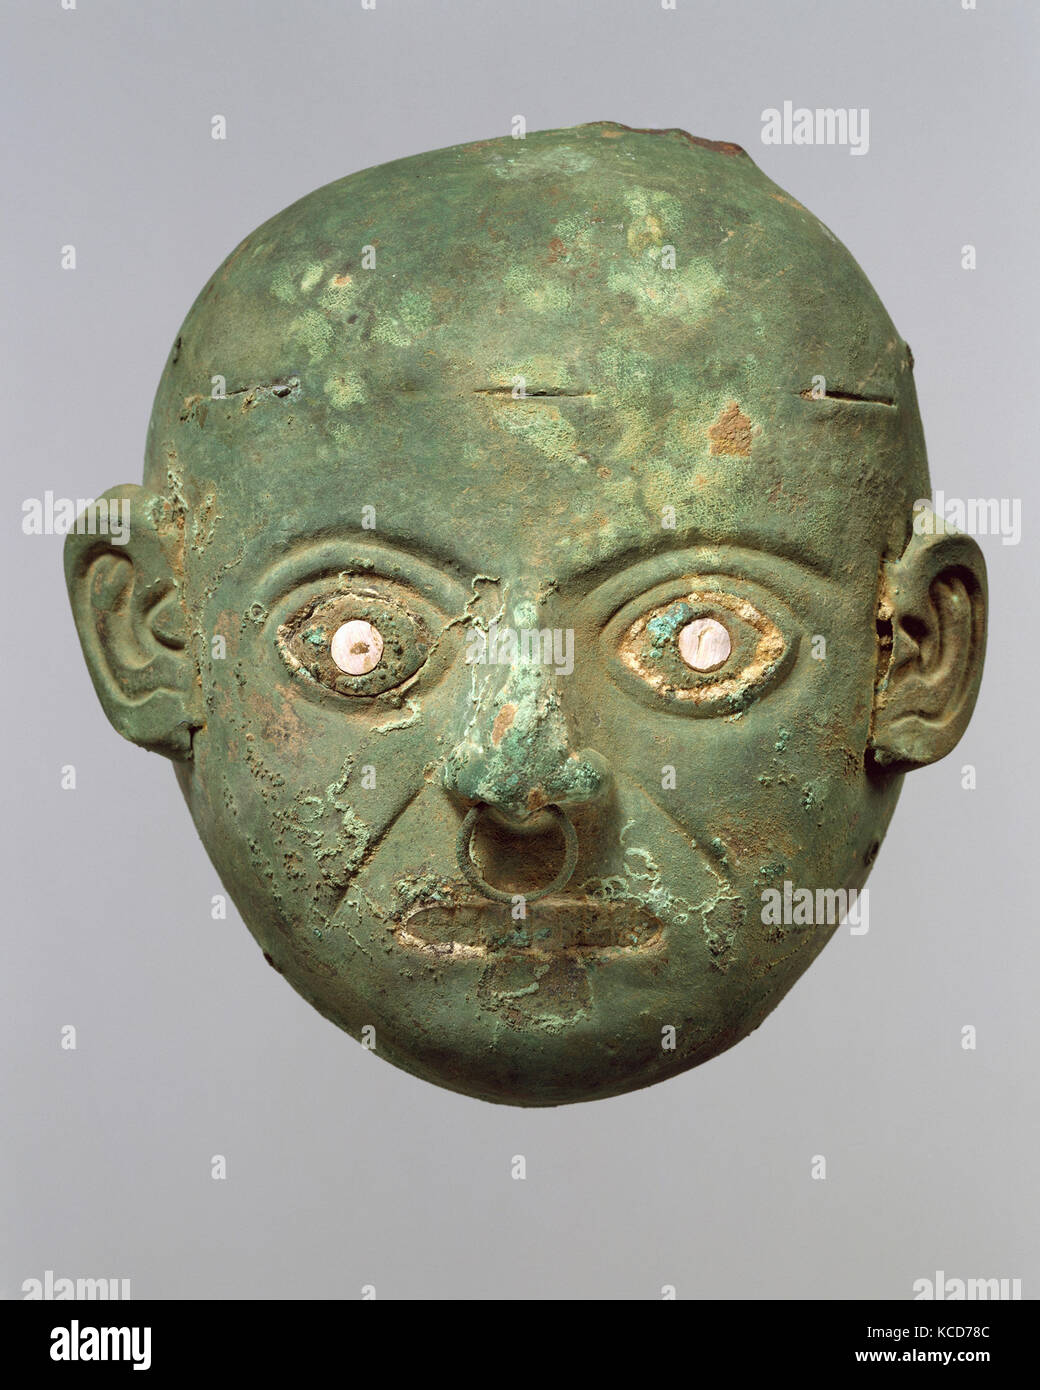 Mask, 2nd–3rd century, Peru, Moche, Copper, shell inlays, H. 8 x W. 7 1/2 in. (20.3 x 19 cm), Metal-Ornaments - Stock Image